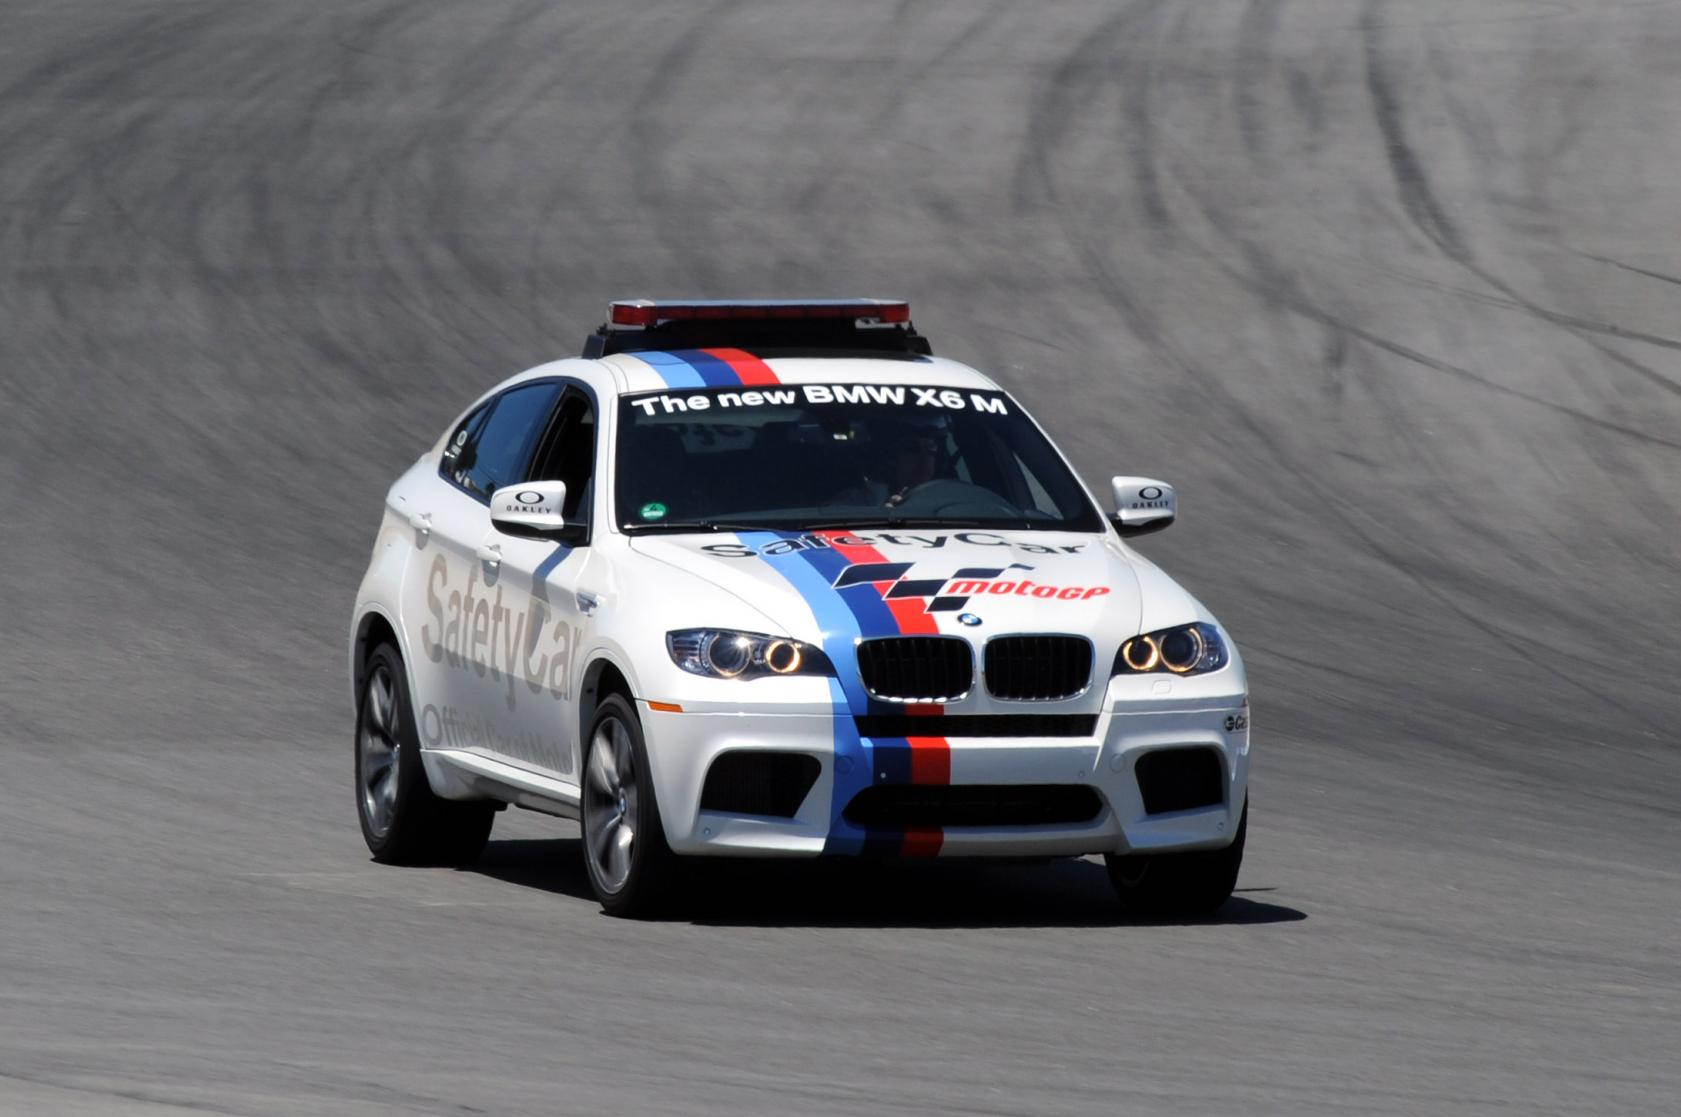 bmw x6 m pace setter at red bull u s grand prix laguna seca. Black Bedroom Furniture Sets. Home Design Ideas